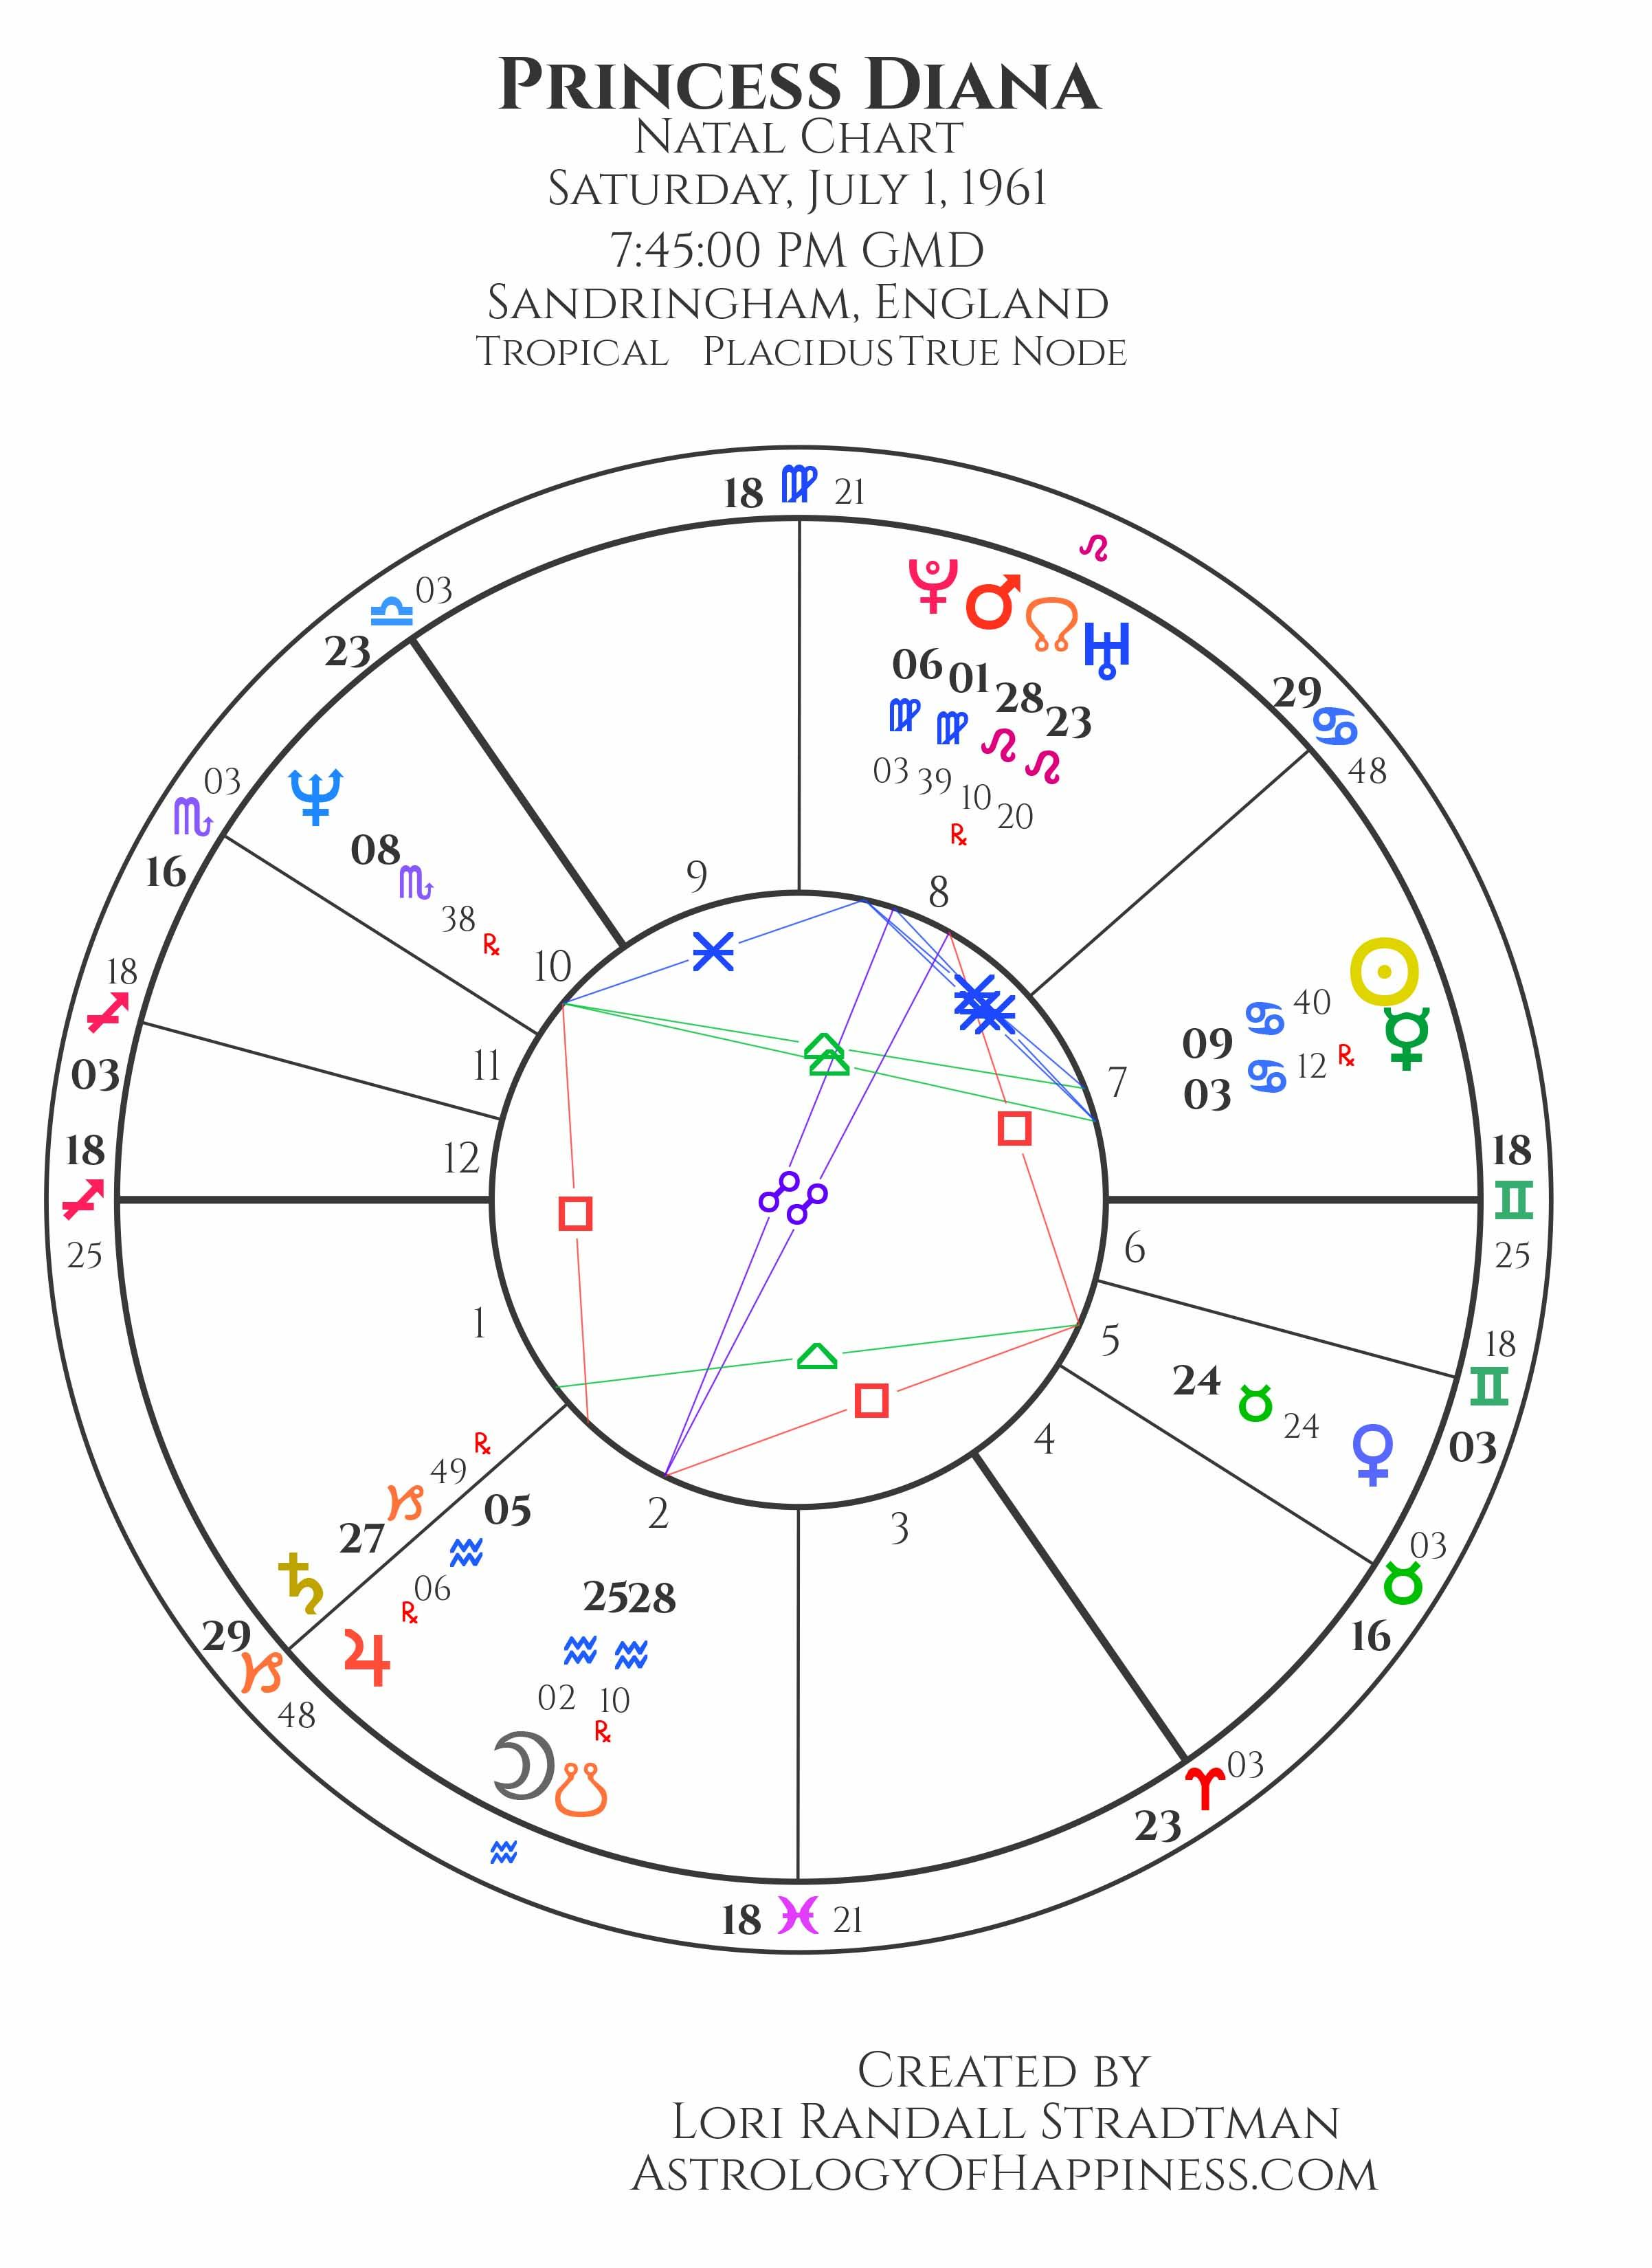 Studying Princess Diana's chart tells a lot about her rise to fame ...